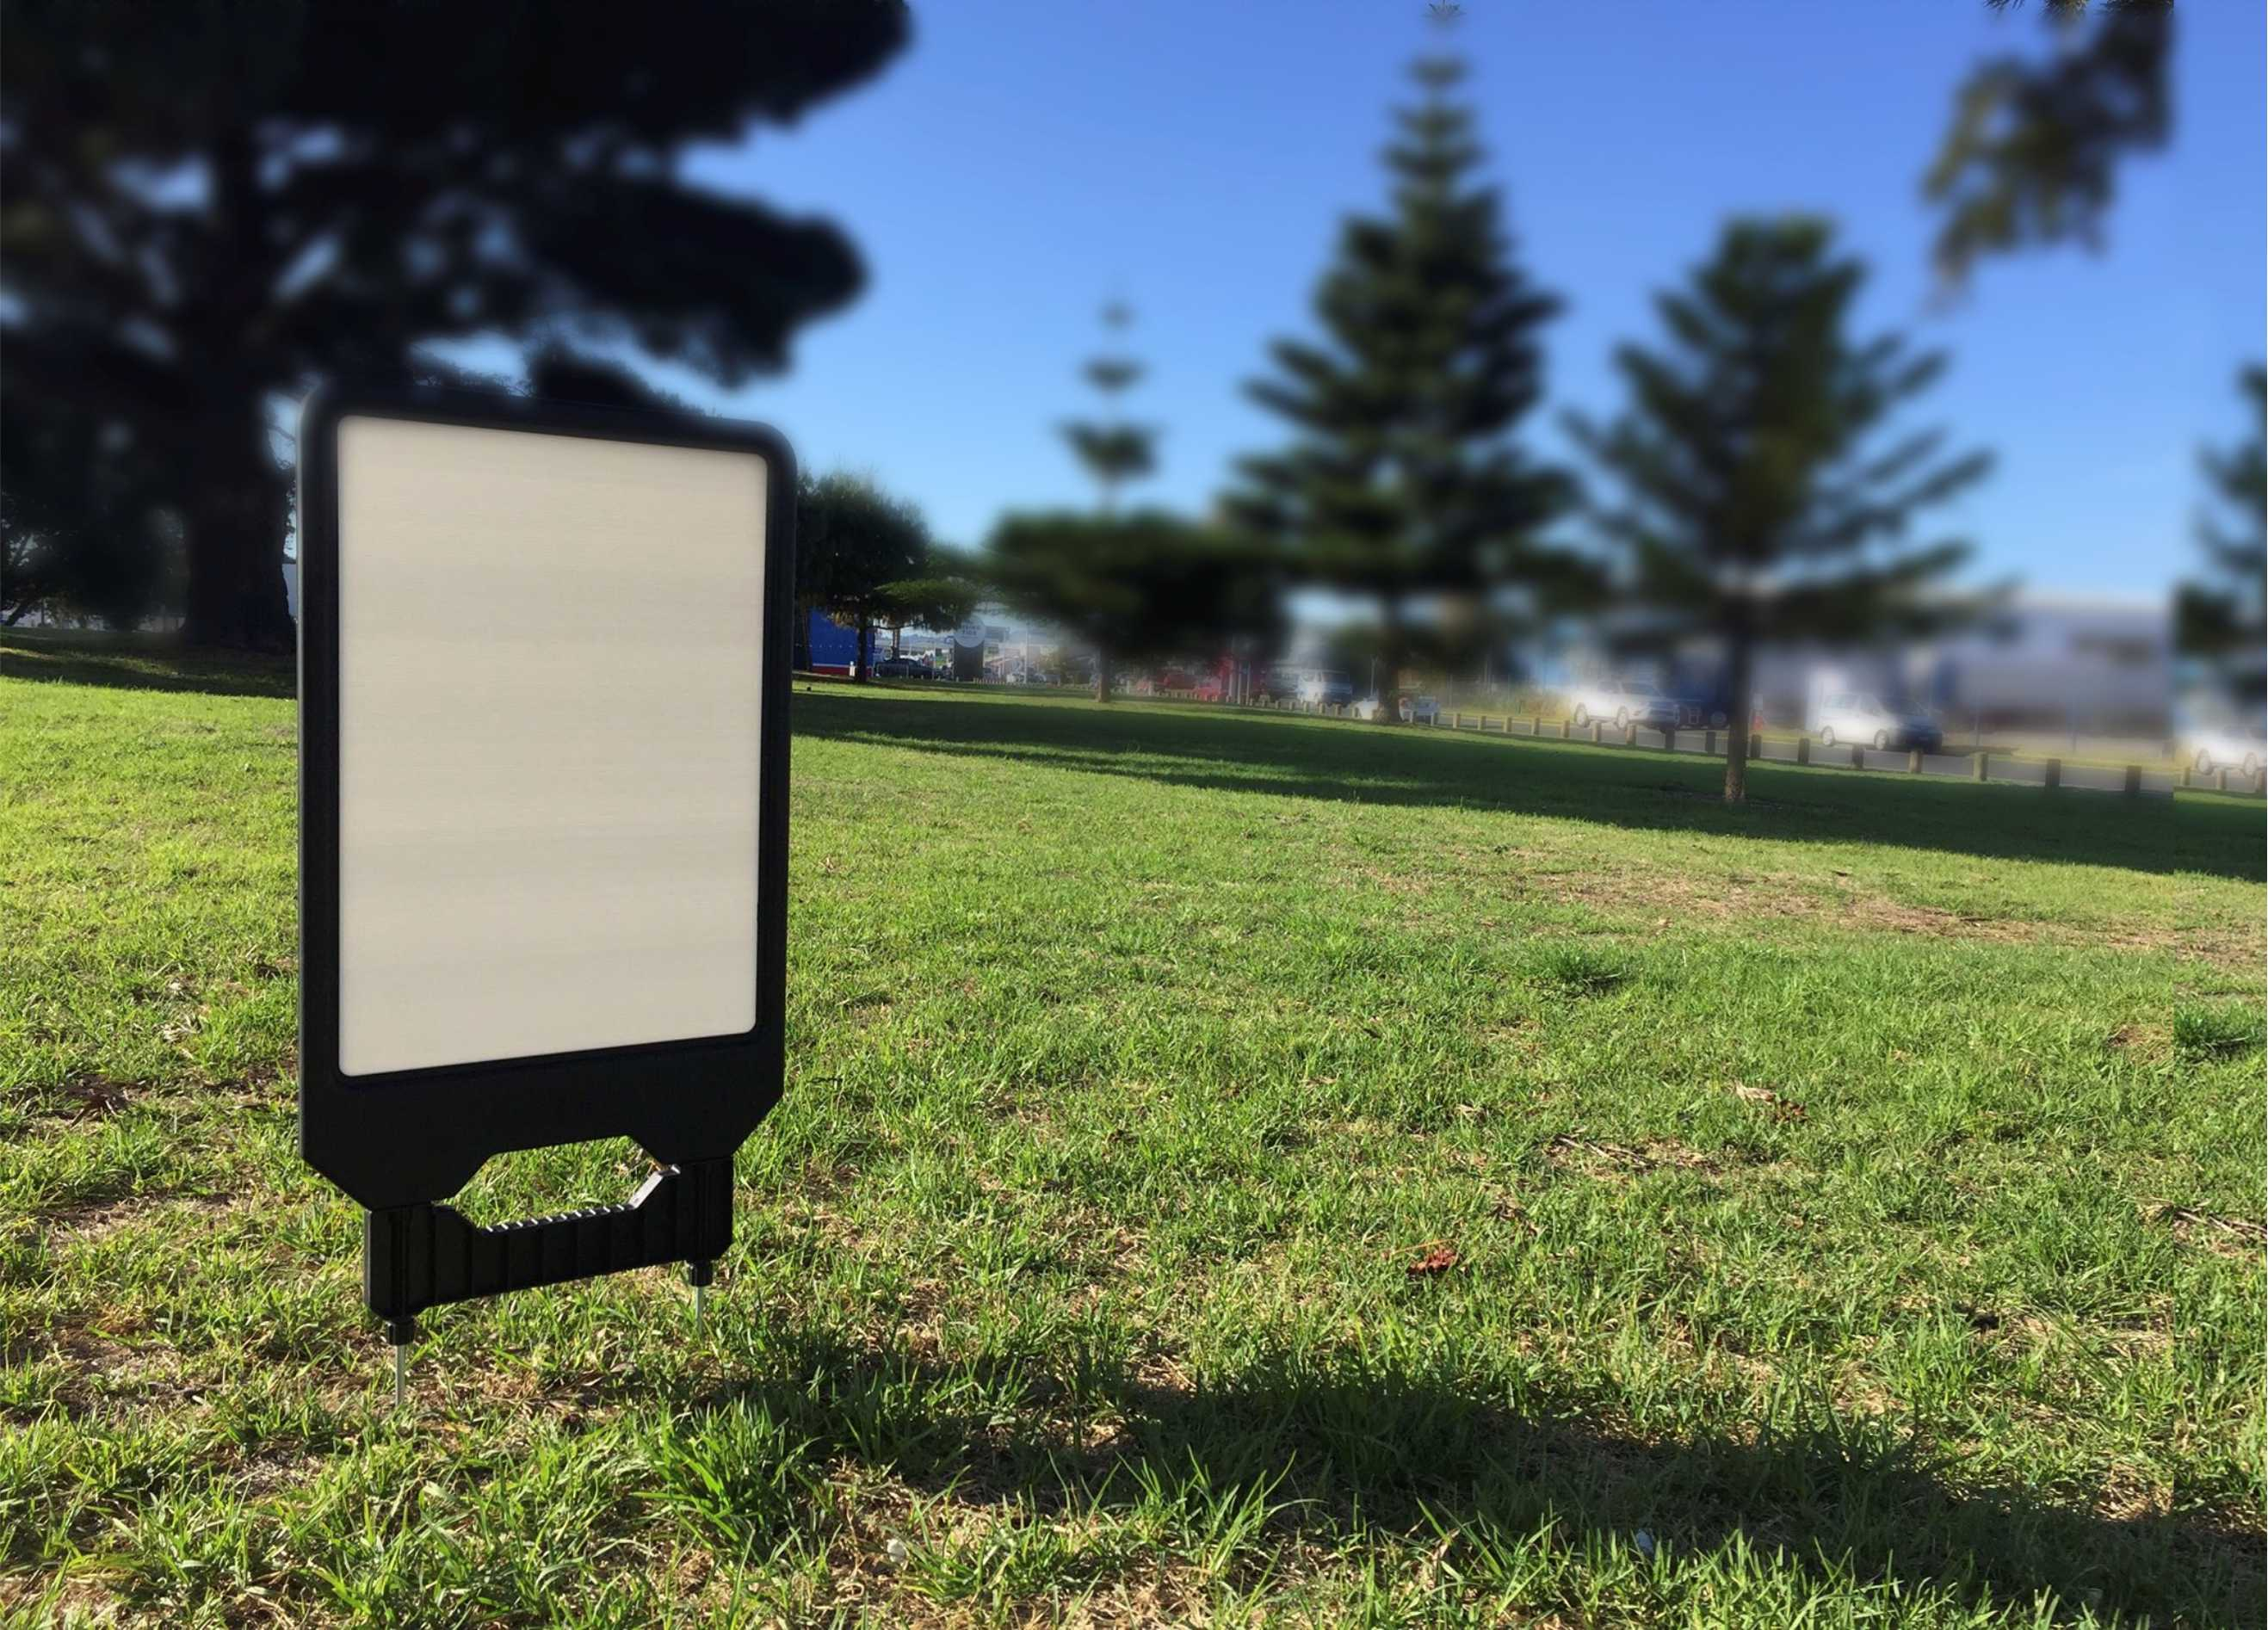 Brandstands interchangeable sign hardware makes it easily to slips a new message into the display housing with in mintues ...